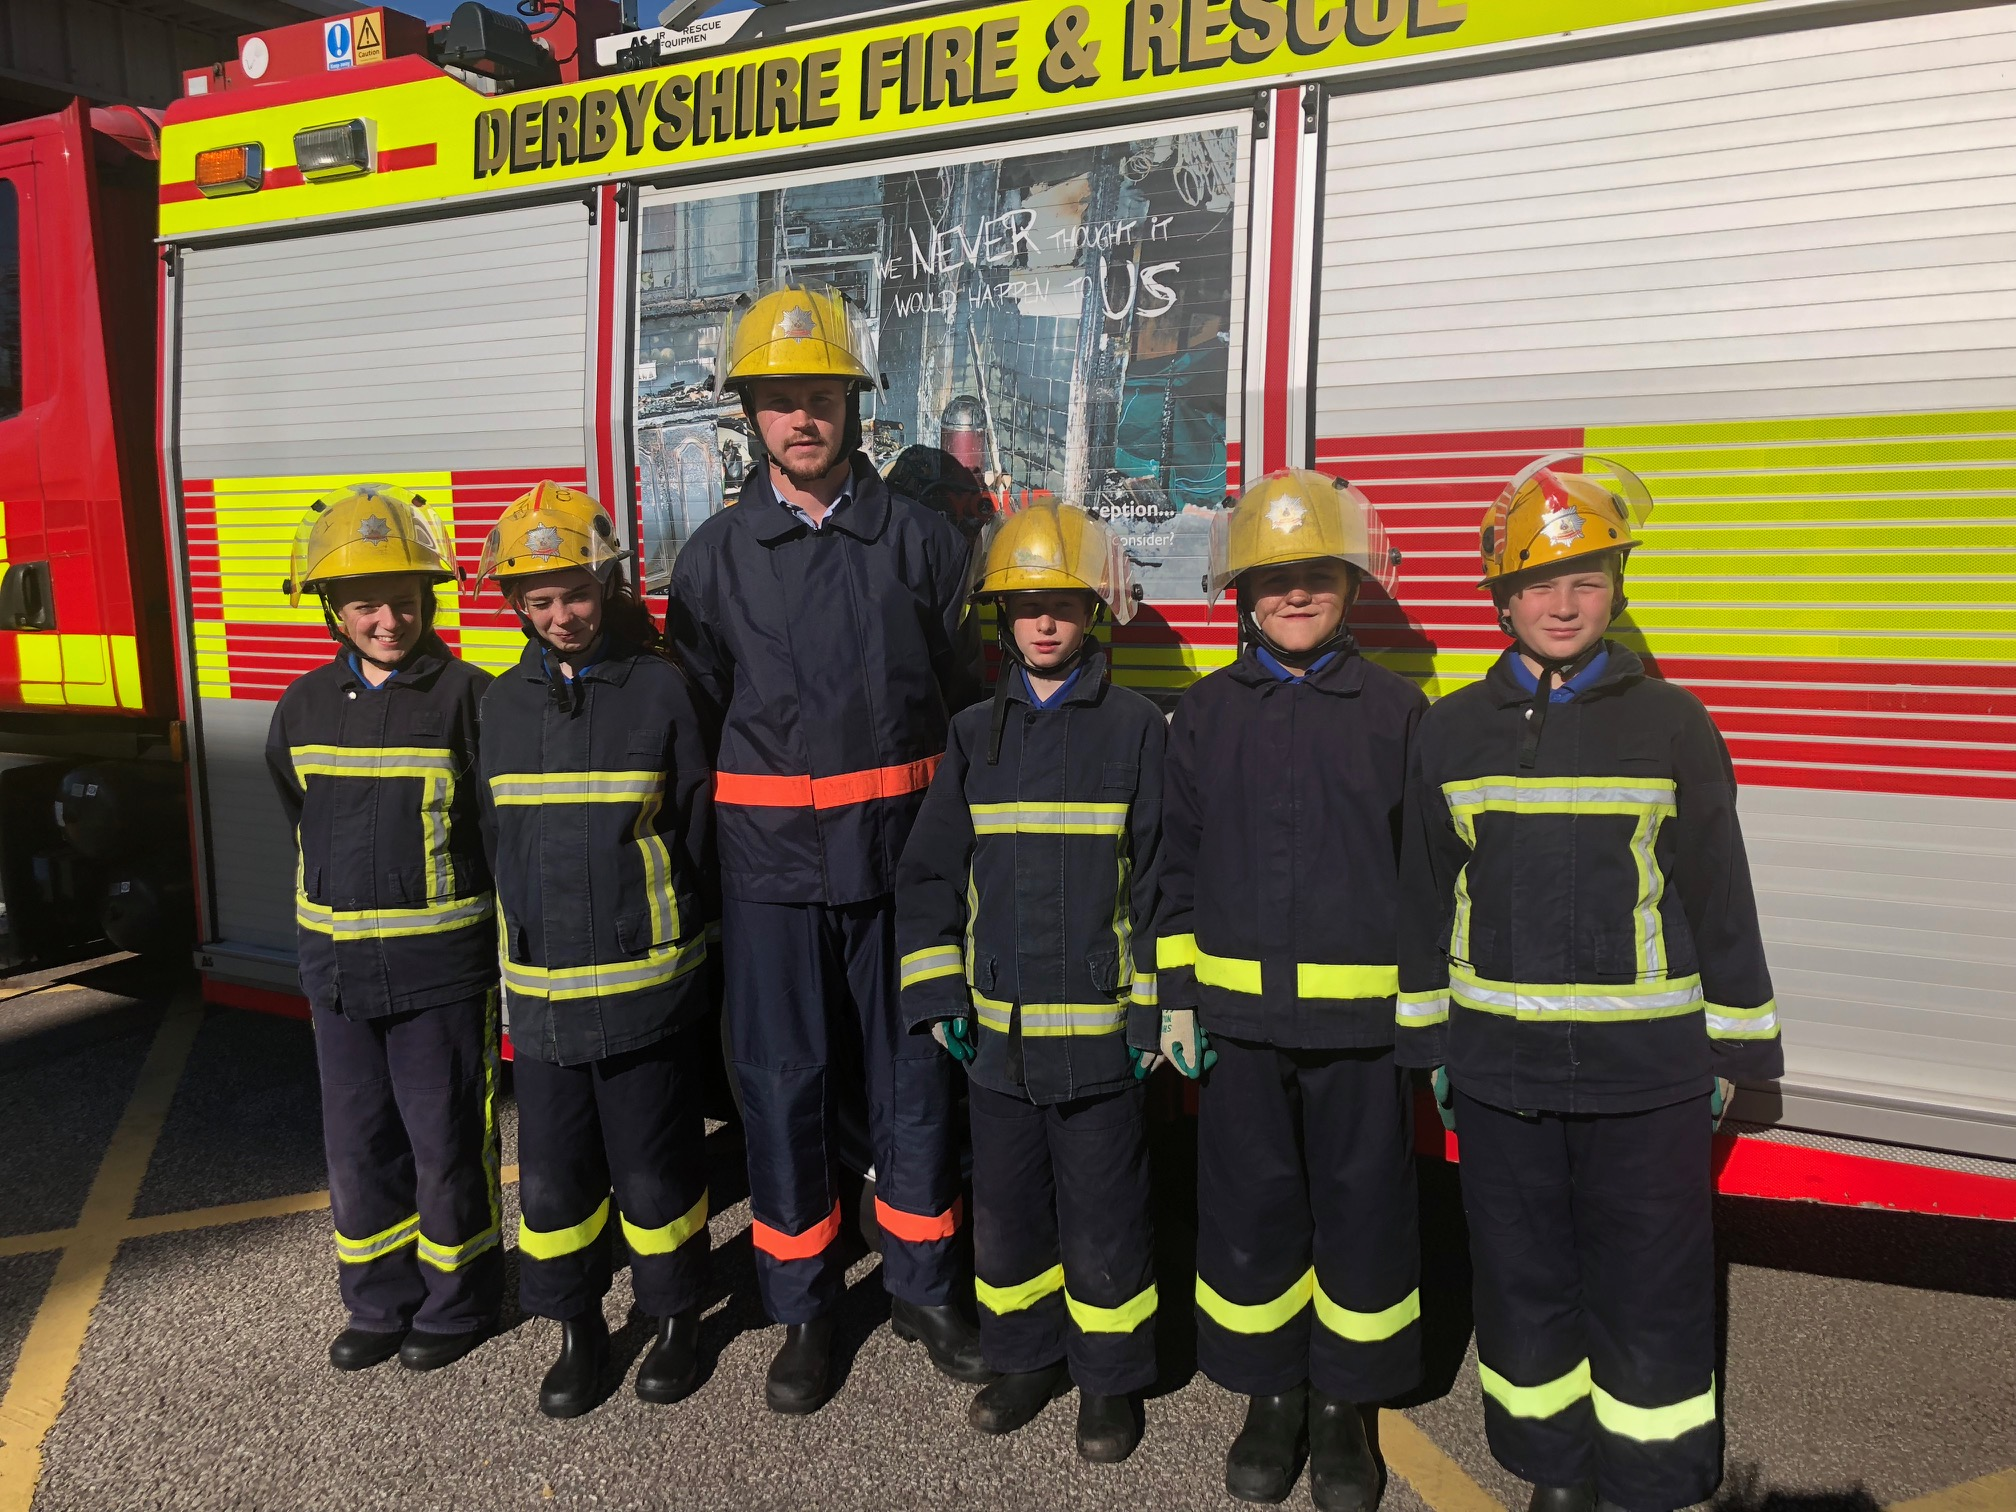 Pupils from The Bemrose School have completed a YES! course at Kingsway Station in Derby, thanks to Derbyshire Fire and Rescue. Penguin PR: public relations, media and communications